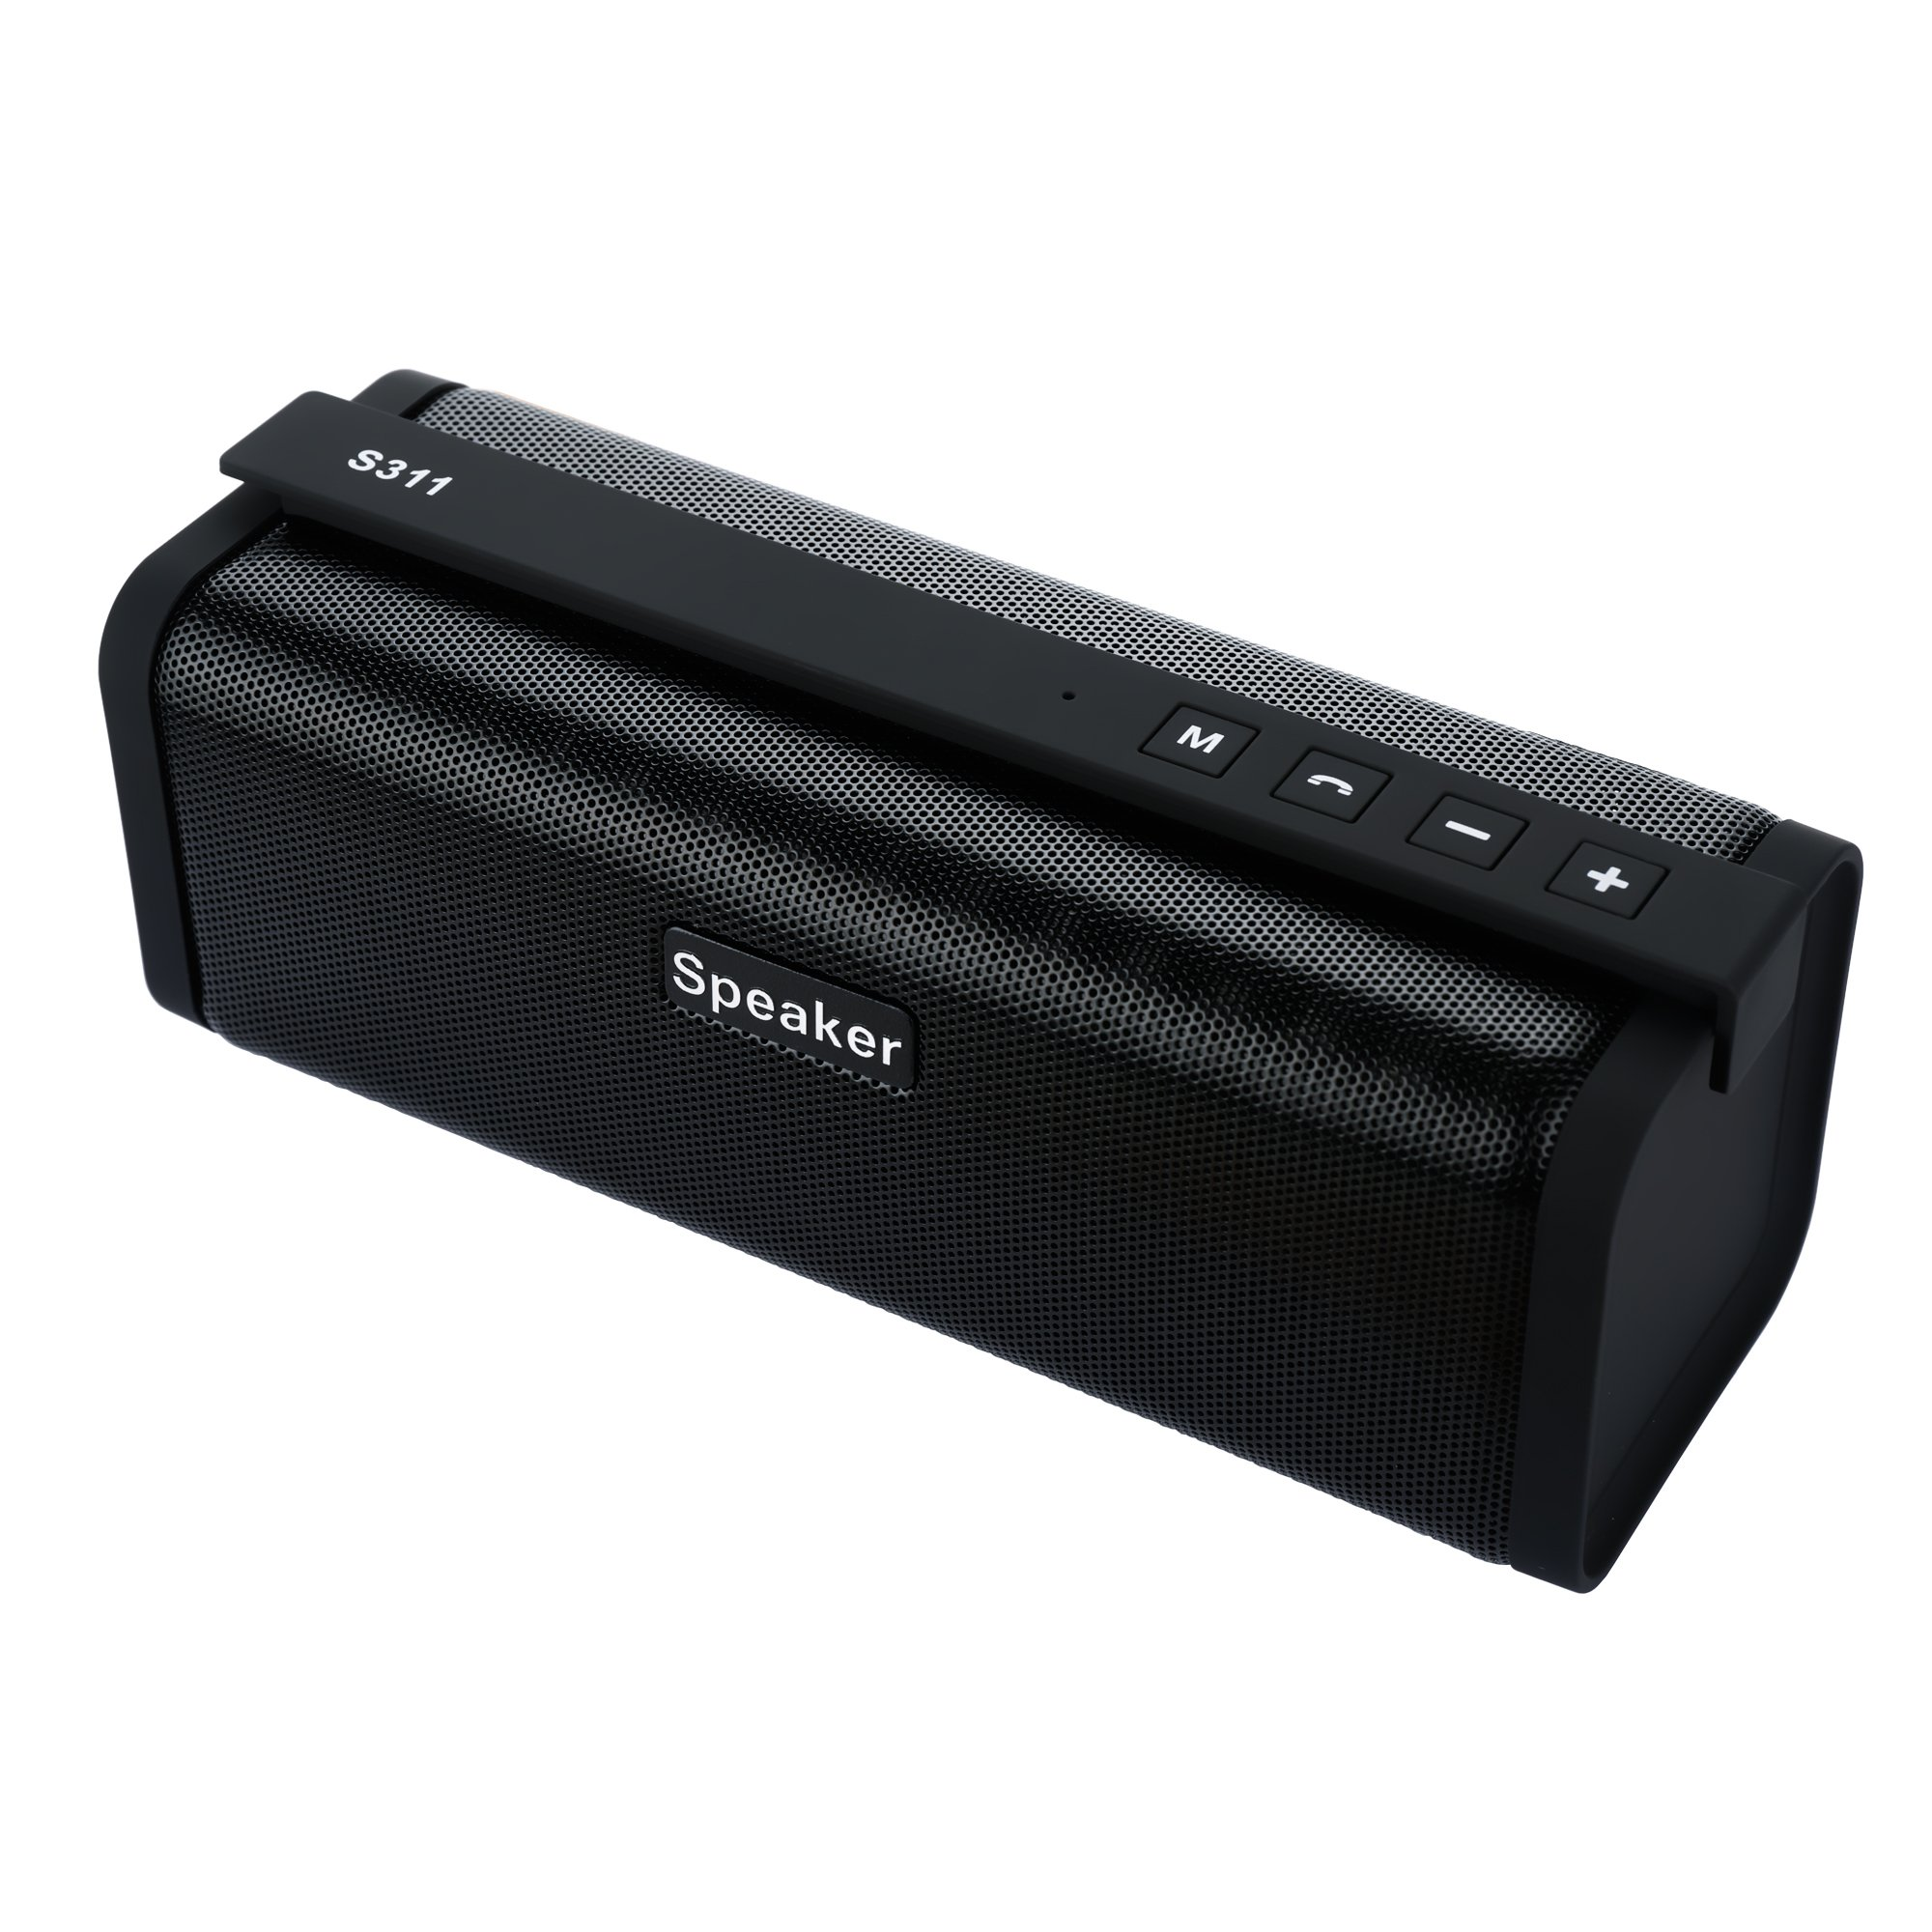 Portable Wireless Bluetooth 4.0 Speaker 10W Outdoor with 33-Foot Bluetooth Range, FM Radio, USB, Micro SD, 1200mAh Power Bank For Charging, Strong Bass Build in Microphone - Black by sanwo